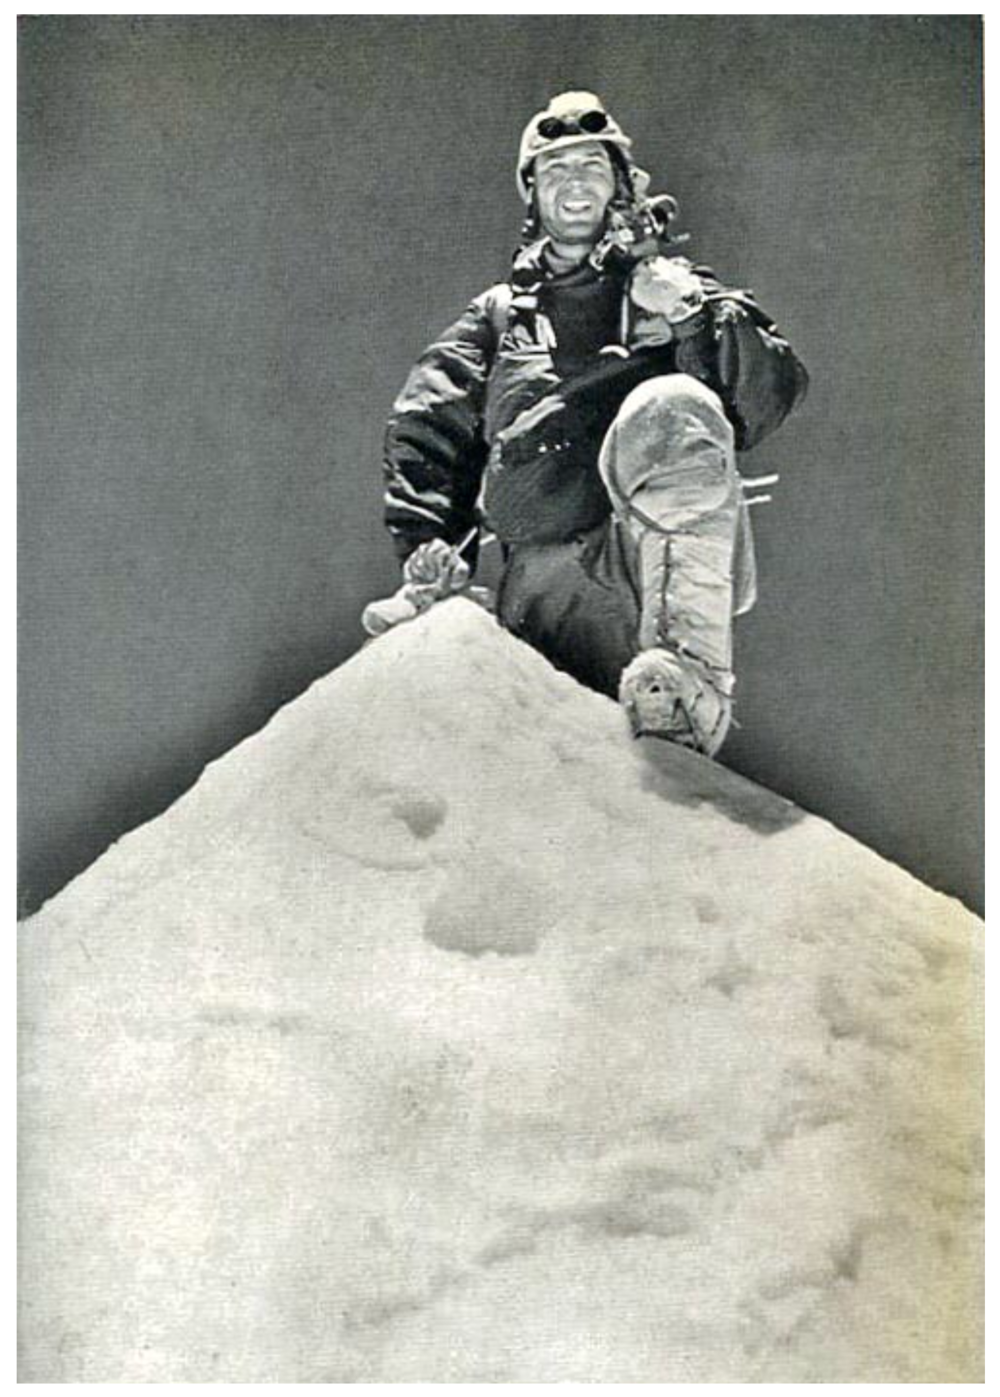 Makalu First Ascent - Expedition leader Jean Couzy on the Makalu summit May 15, 1955 Photographed by Lionel Terray